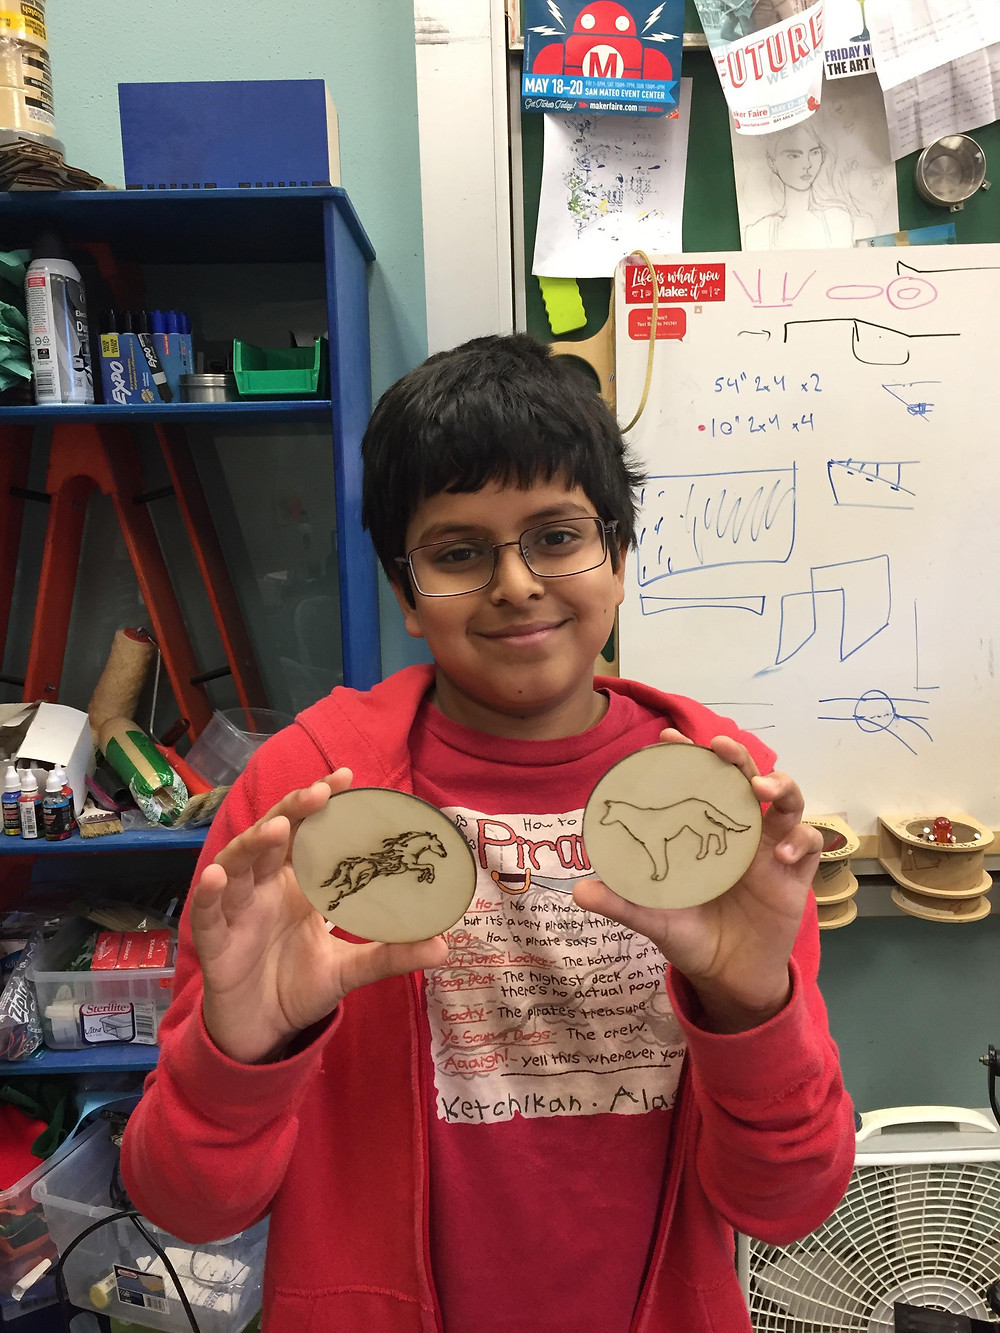 """This Saturday, Siddh came into MakeX looking to make coasters for his mother. """"I put dogs and horses using the laser cutter and then wrapped it to make look nice"""". Siddh is a seventh grader art JLS and comes here regularly to make things. """"My favorite thing to do here is design stuff and use the laser cutter. I come here because I like making fire stuff"""". Please come back week to see other makers and their cool projects. Happy New Year - the MakeX Team"""